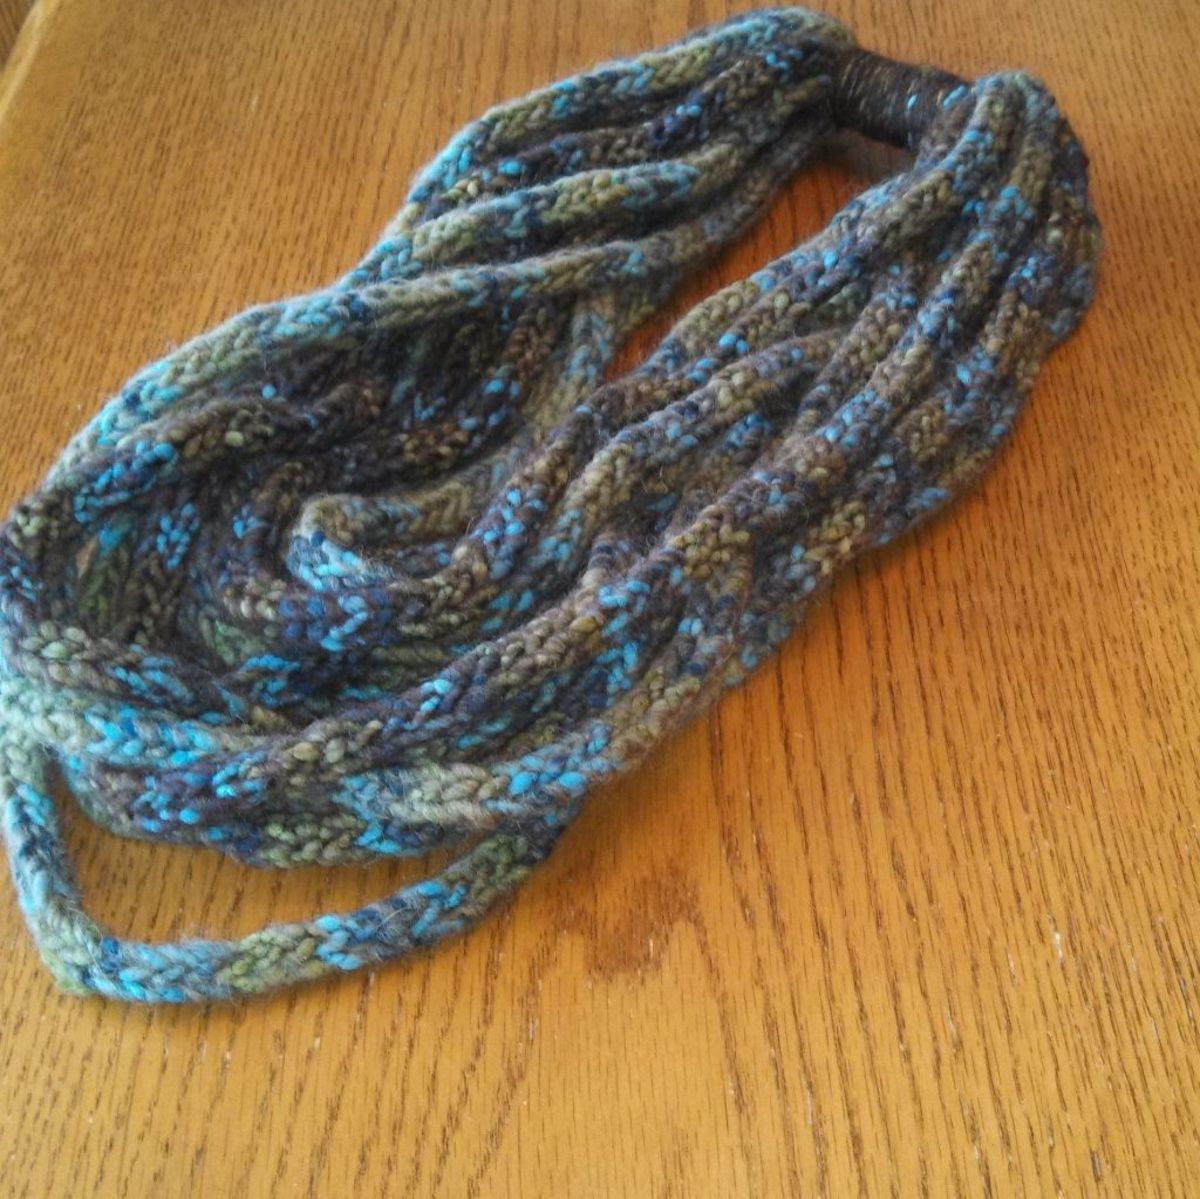 Another spool knit infinity scarf made with vareigated wool. This one made a beautiful Christmas gift!